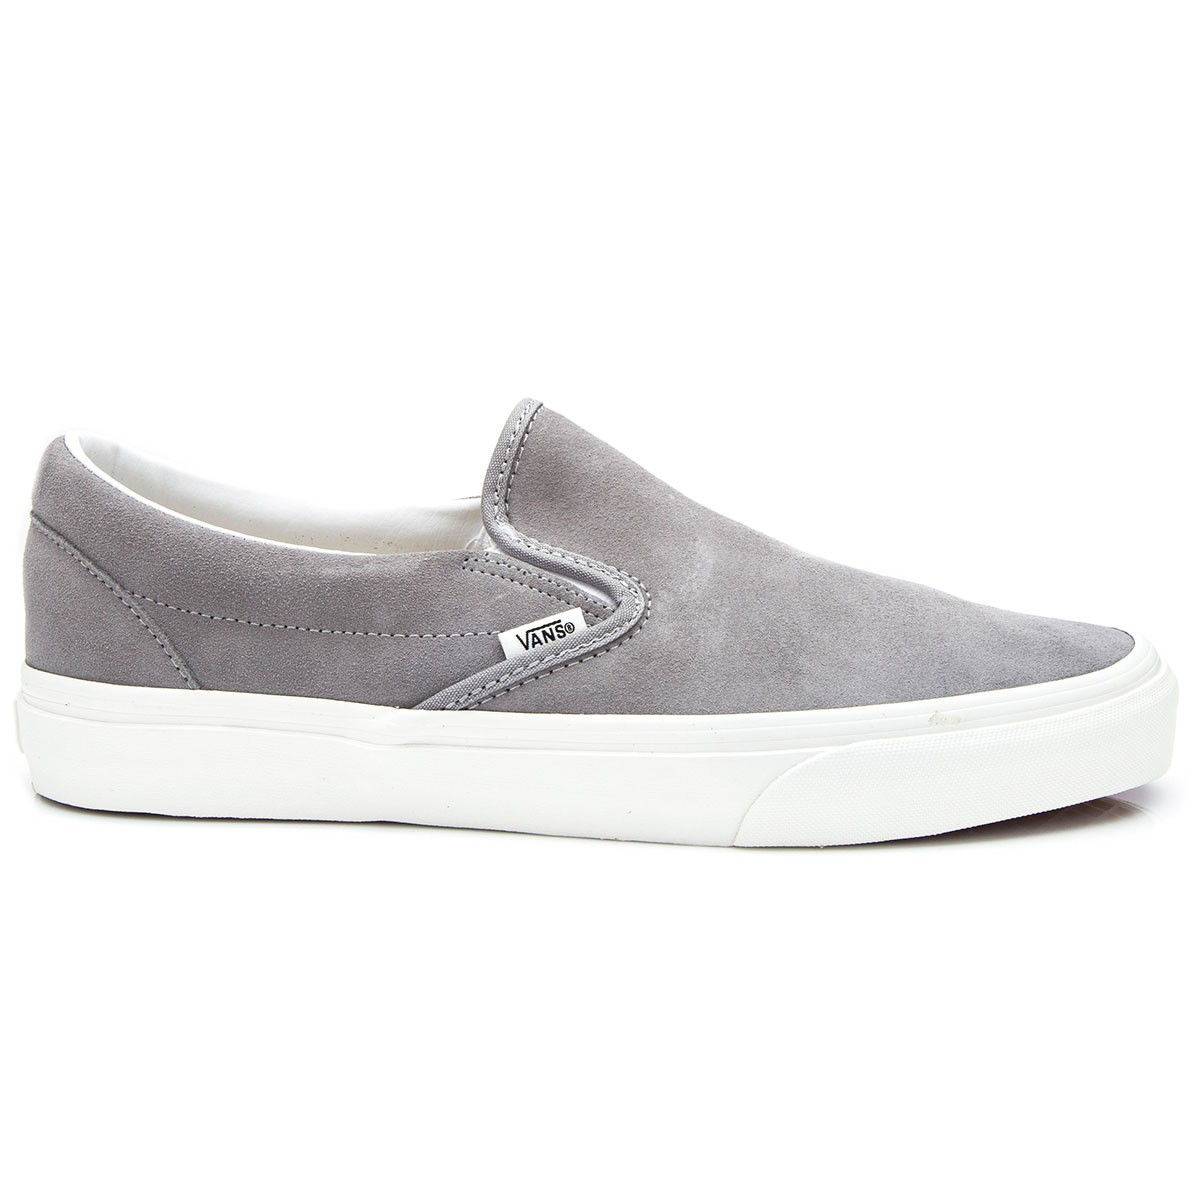 9bb6a831ce9b8d Vans Classic Slip-On Vintage Shoes - Frost Grey Blanc - 6.0